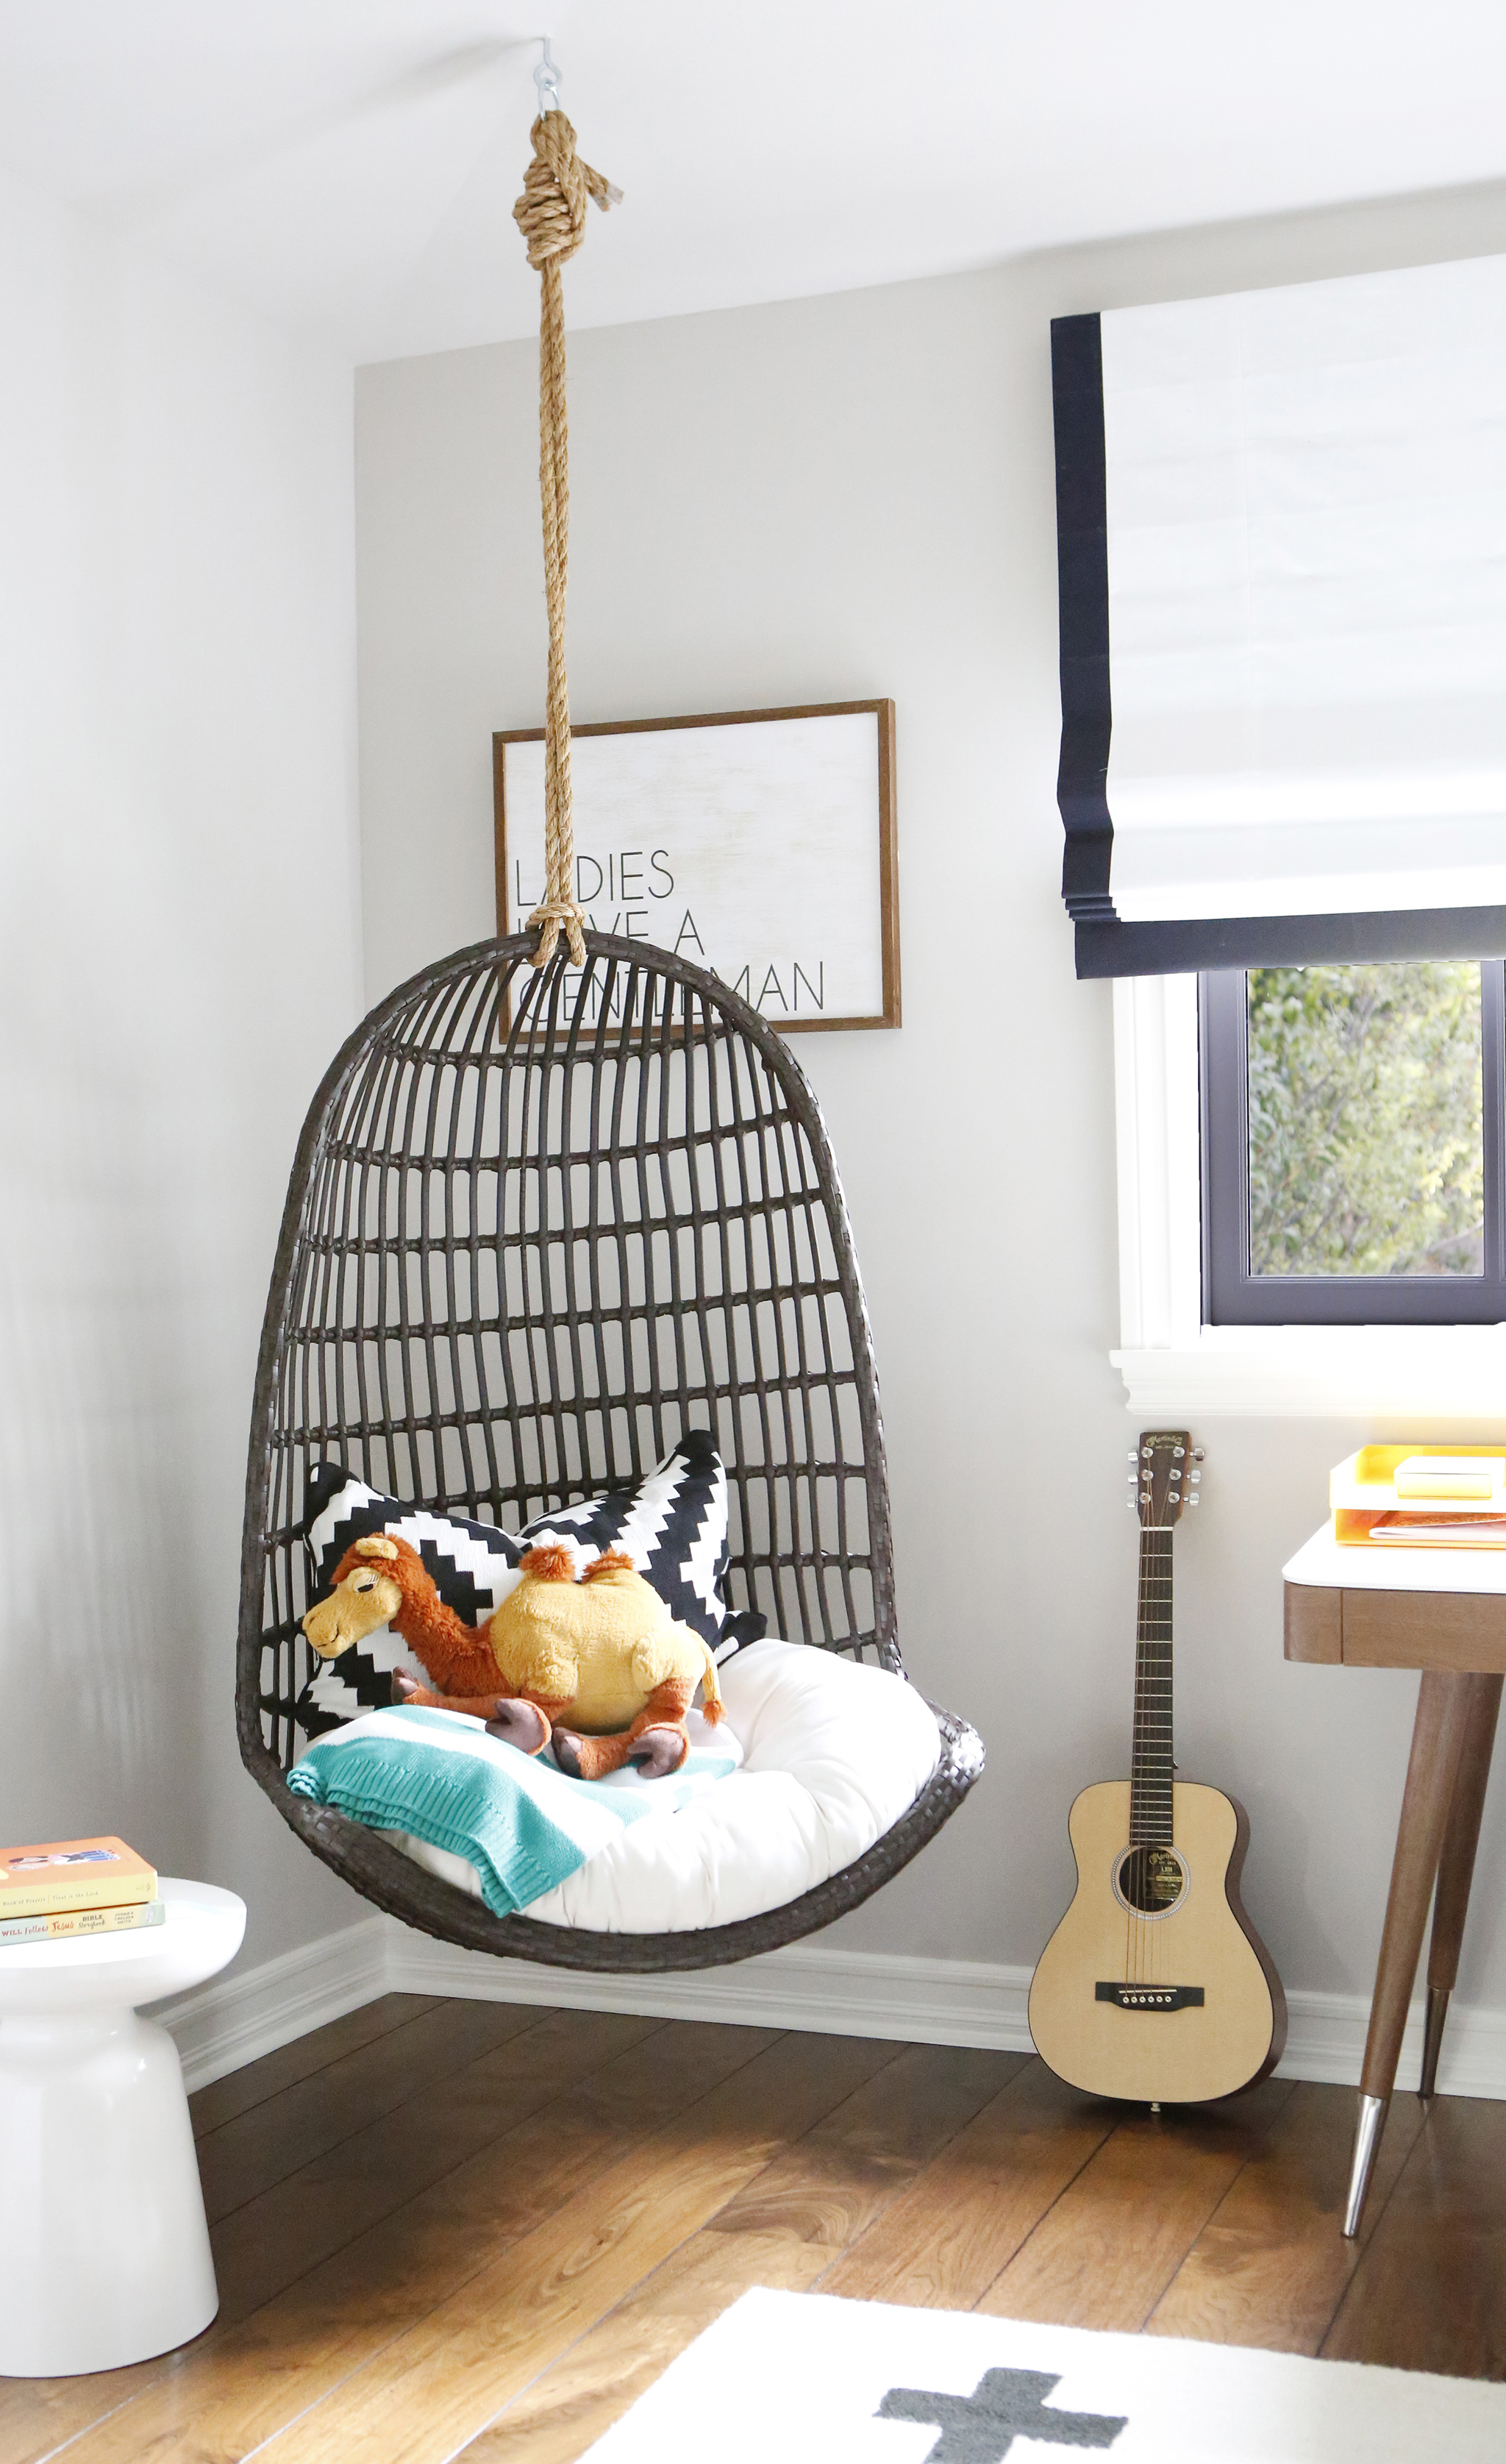 Hanging Chair in Brooke Mahanu0027s Big Kid Room & Trendspotting: Hanging Chairs are Swinging into Kids Design ...